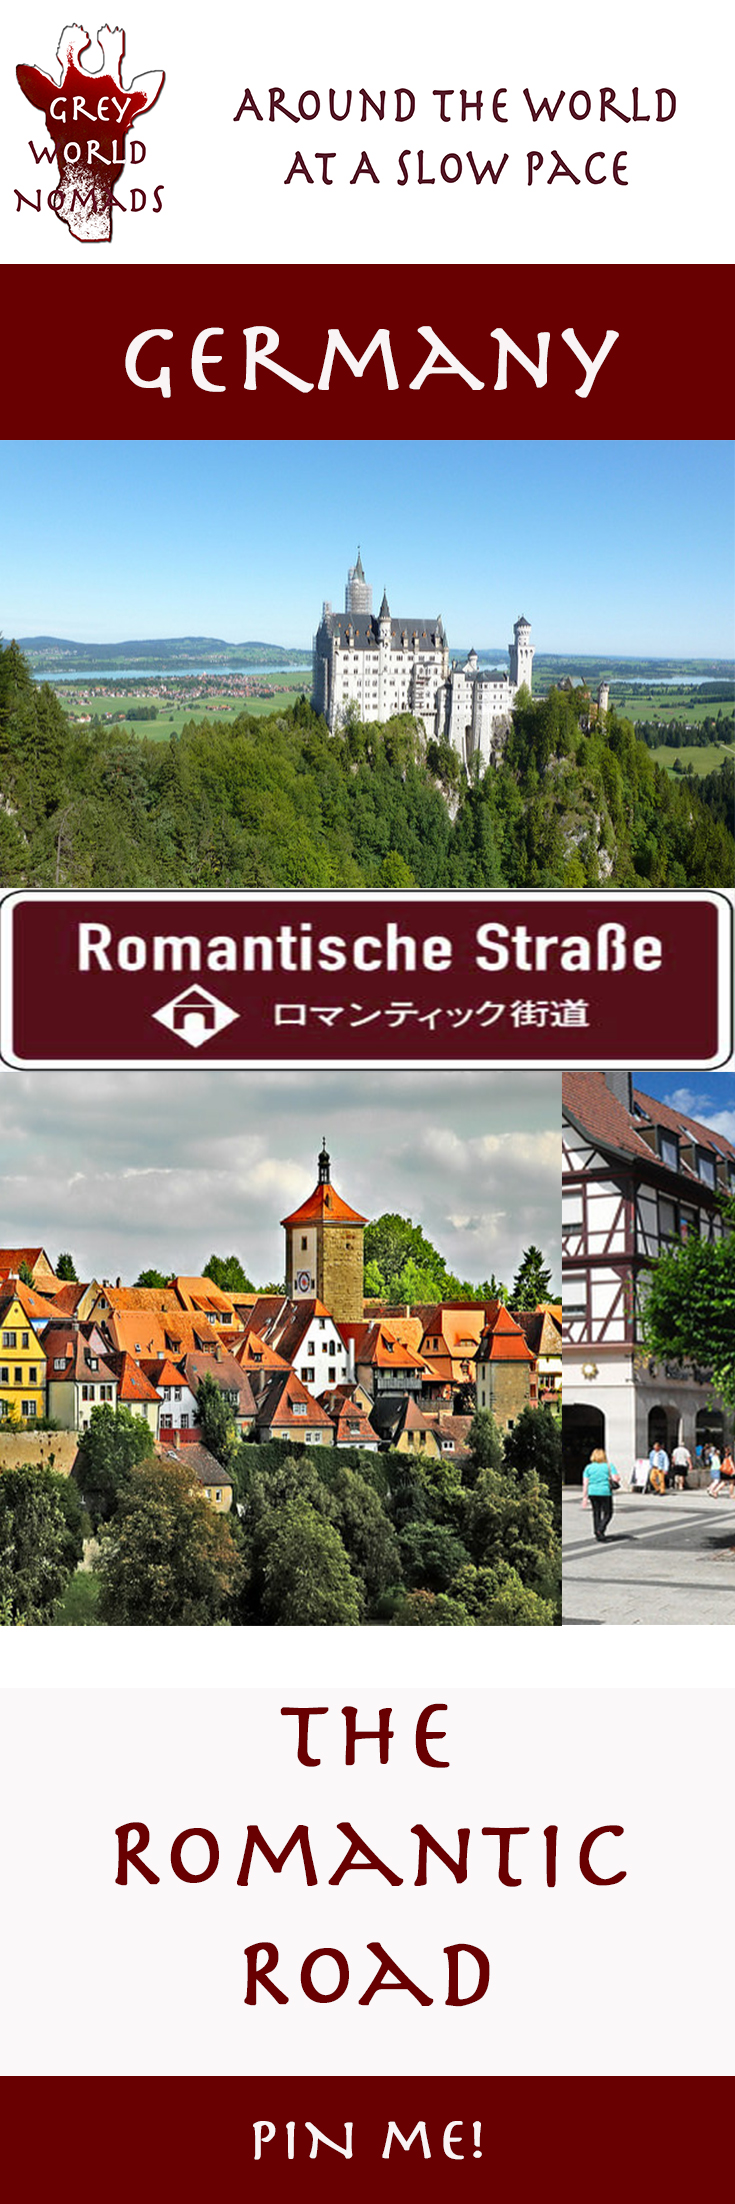 The Romantic Road In Germany